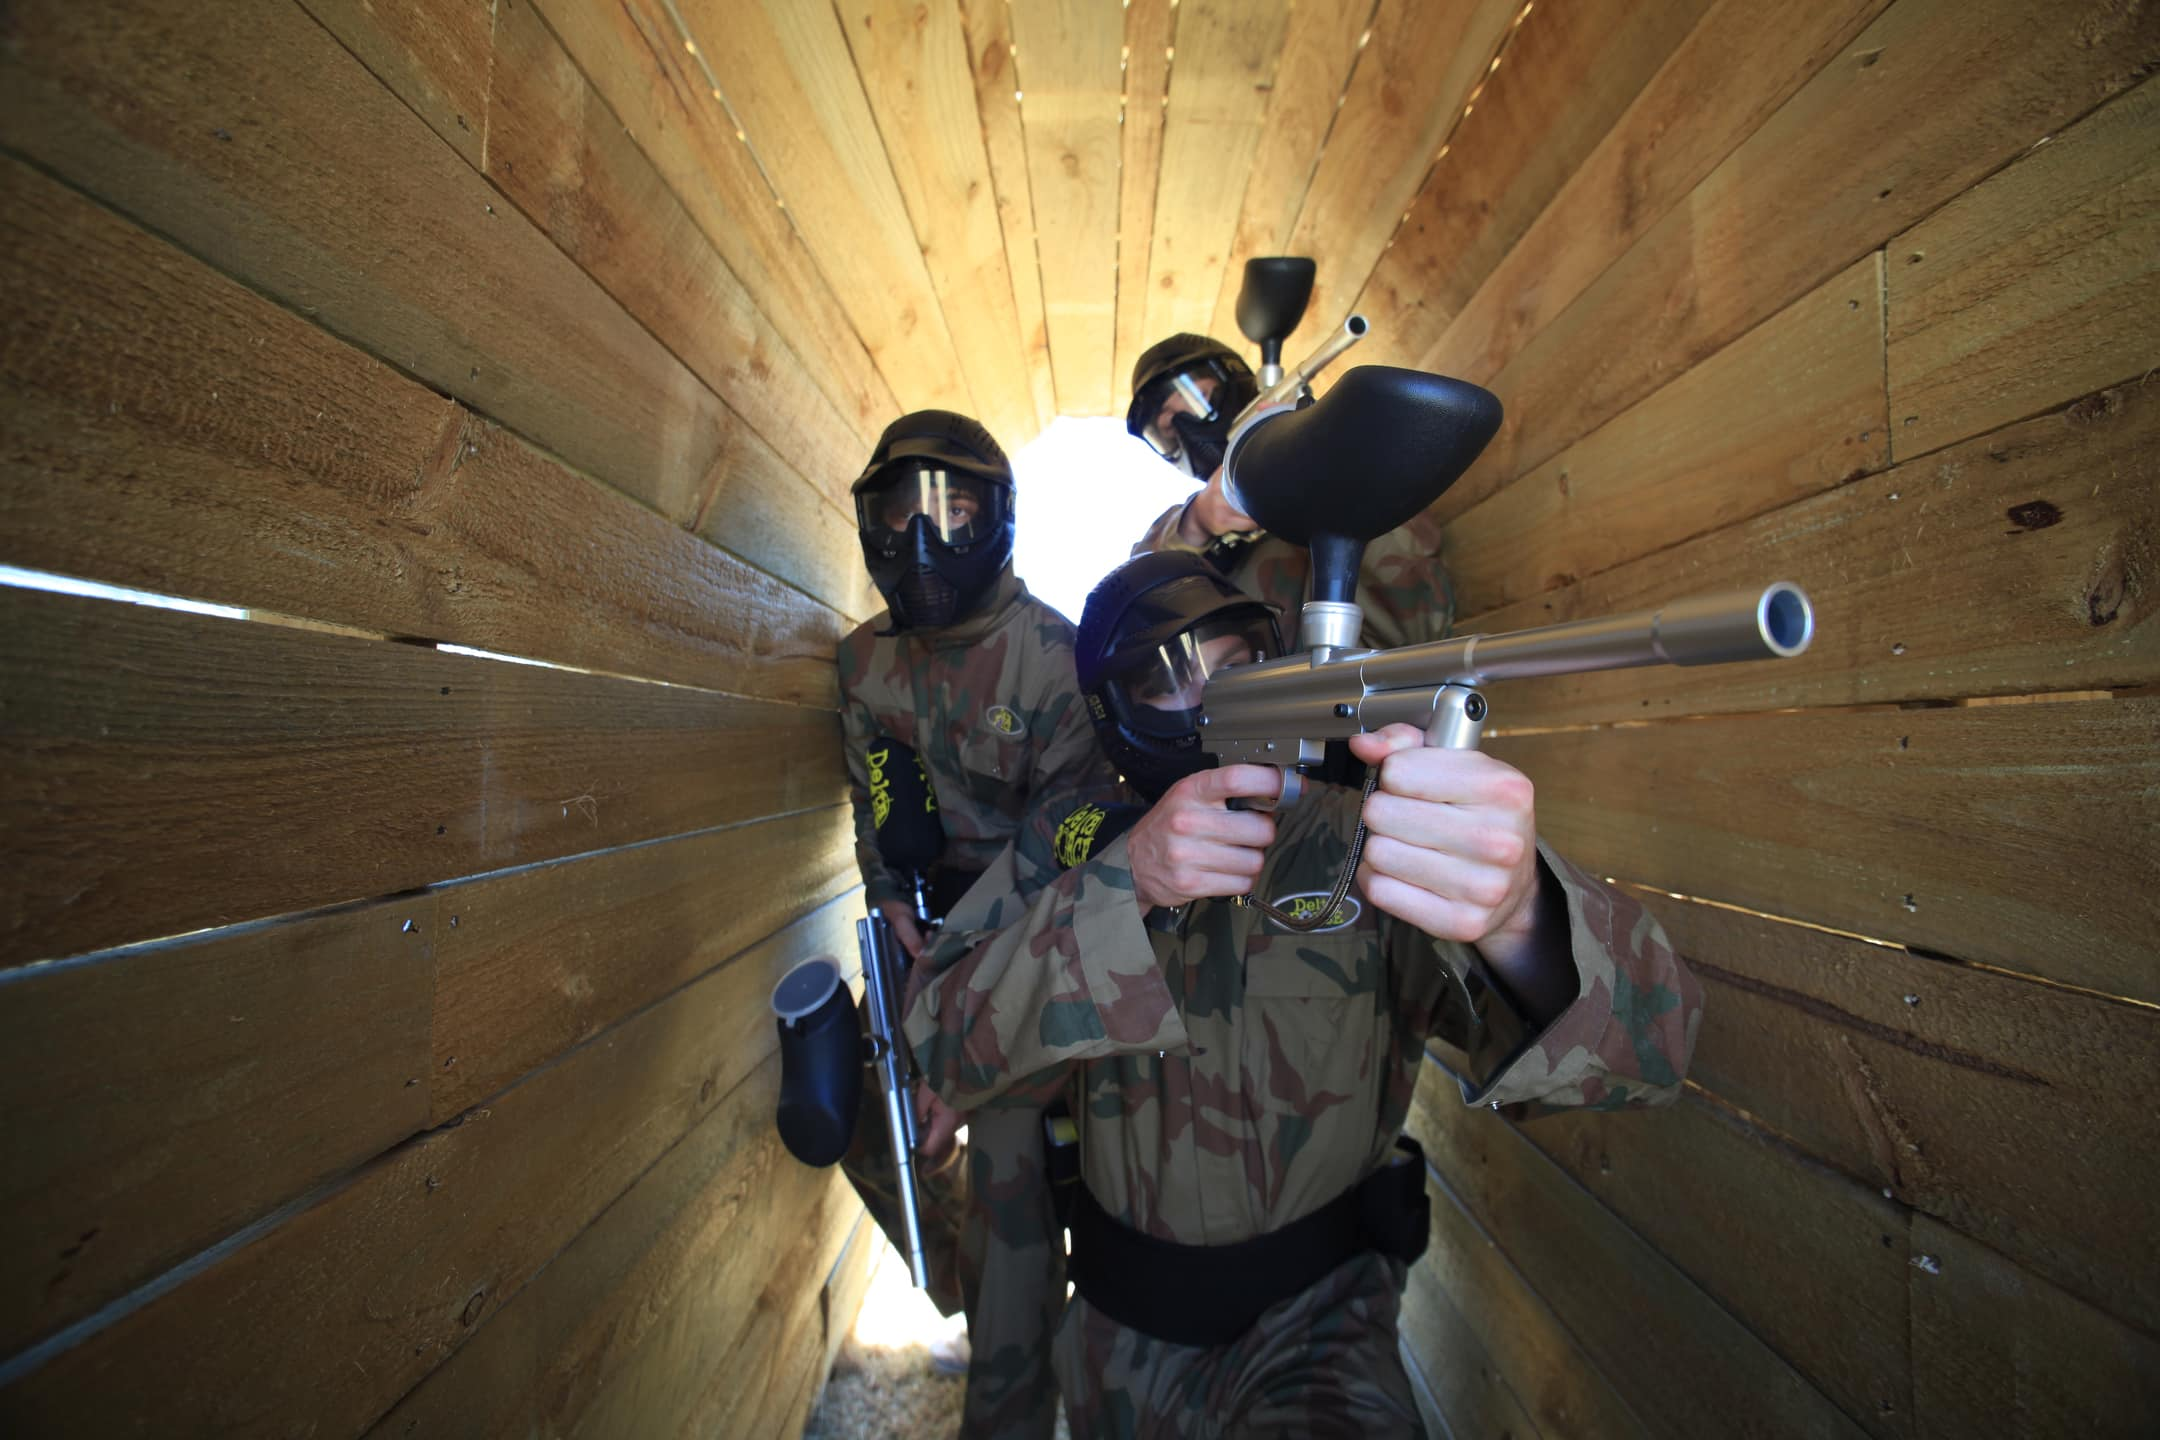 Delta Force Paintball Players Pose In Narrow Walkway